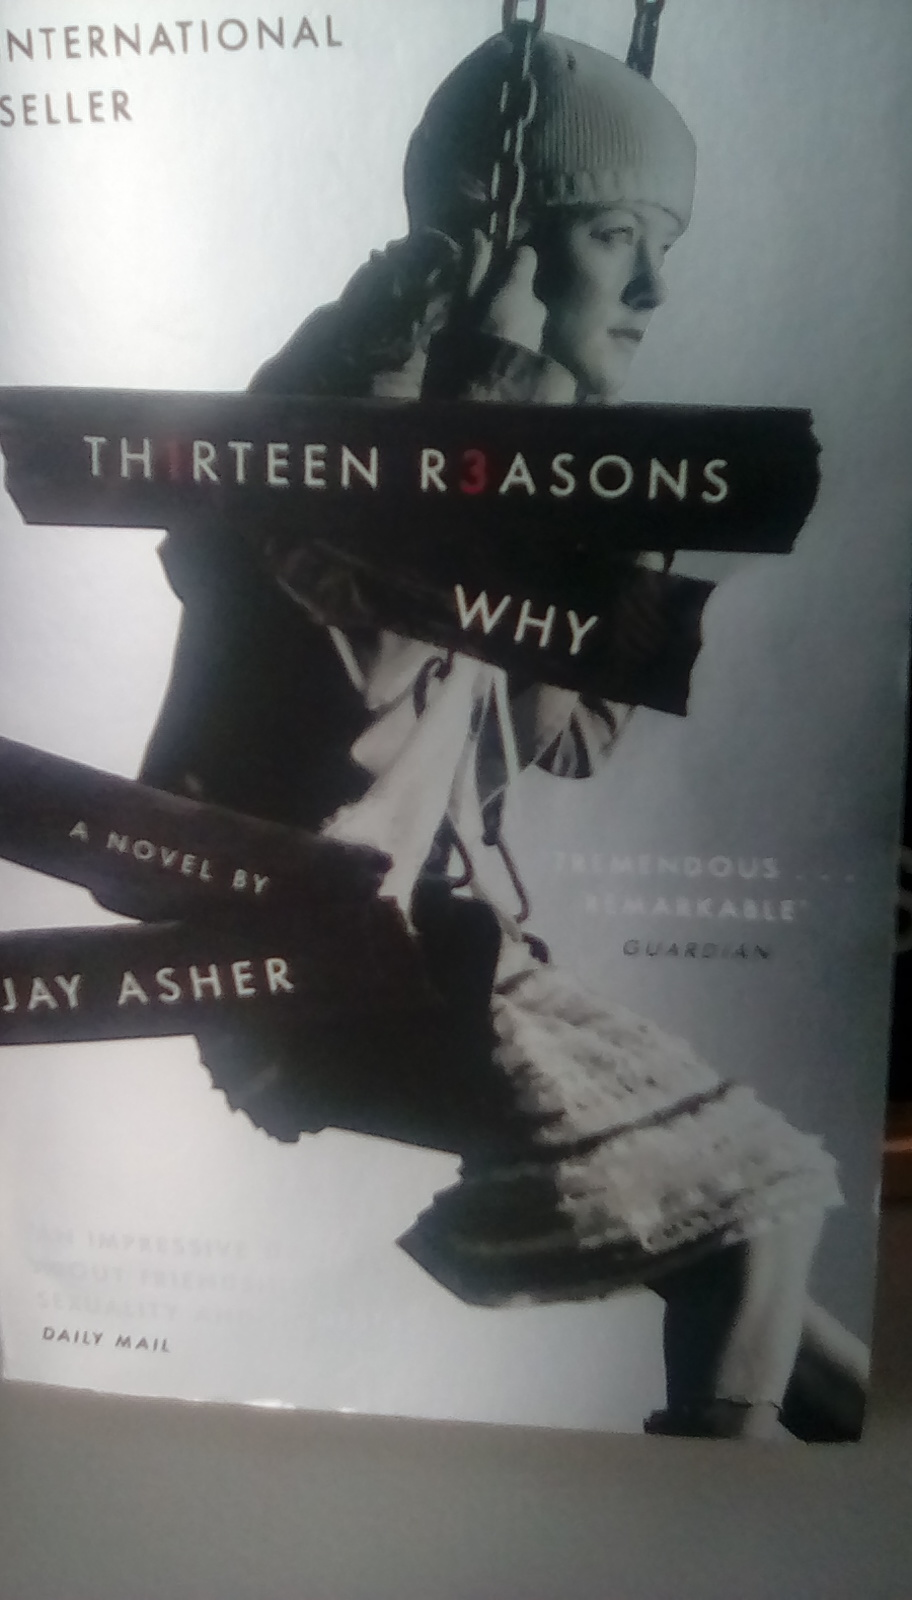 Thirteen Reasons Why by Jay Asher – A Review